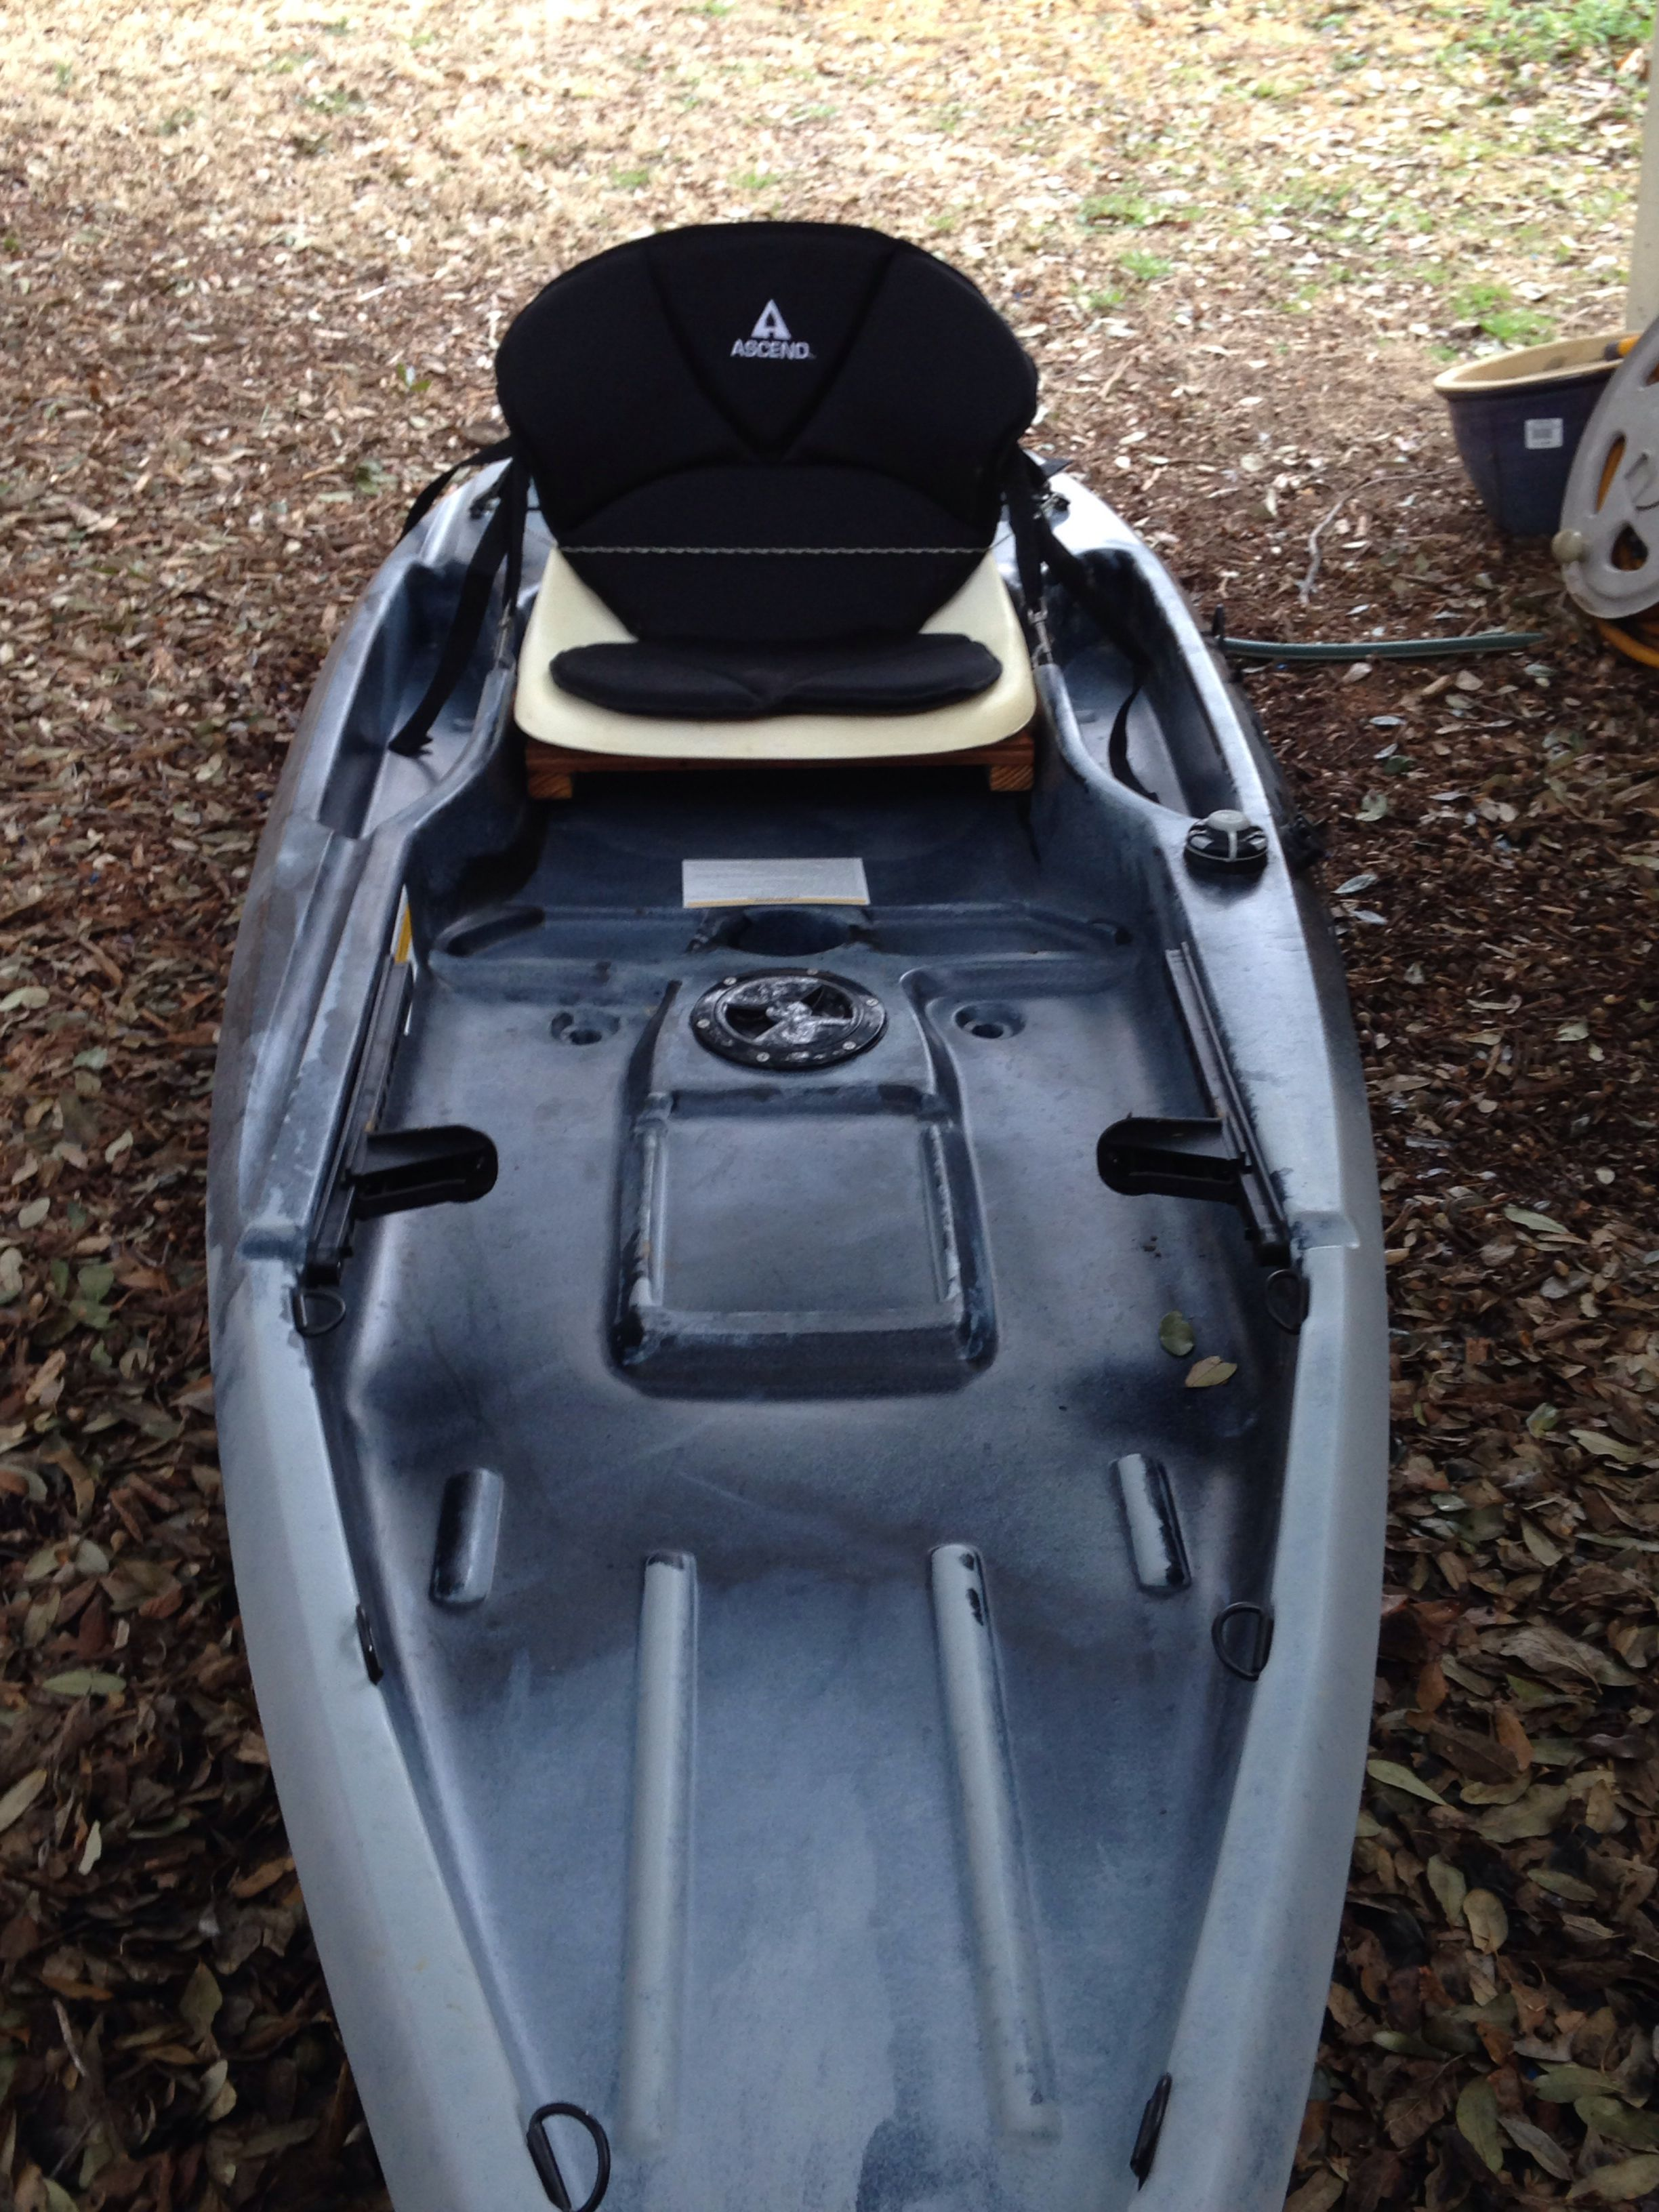 larry chair kayak kids character chairs my ascend d10t seat mods fishing pinterest